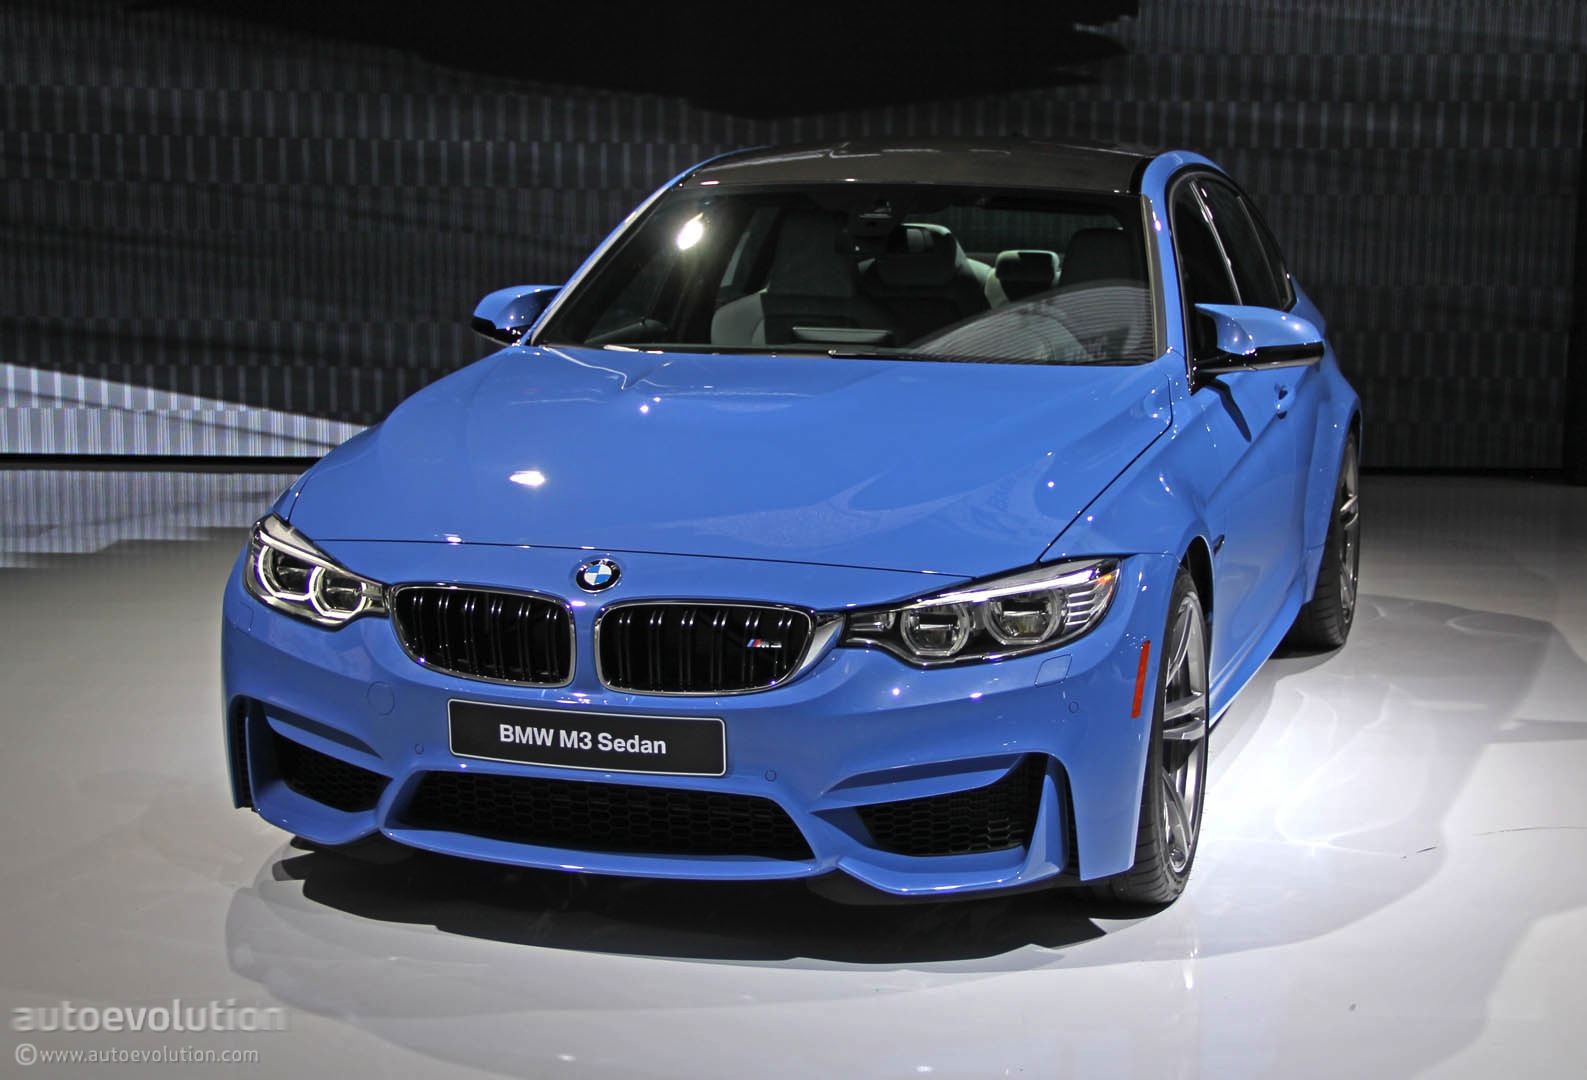 New Bmw M3 Is Blue All Over In Detroit Live Photos HD Wallpapers Download free images and photos [musssic.tk]